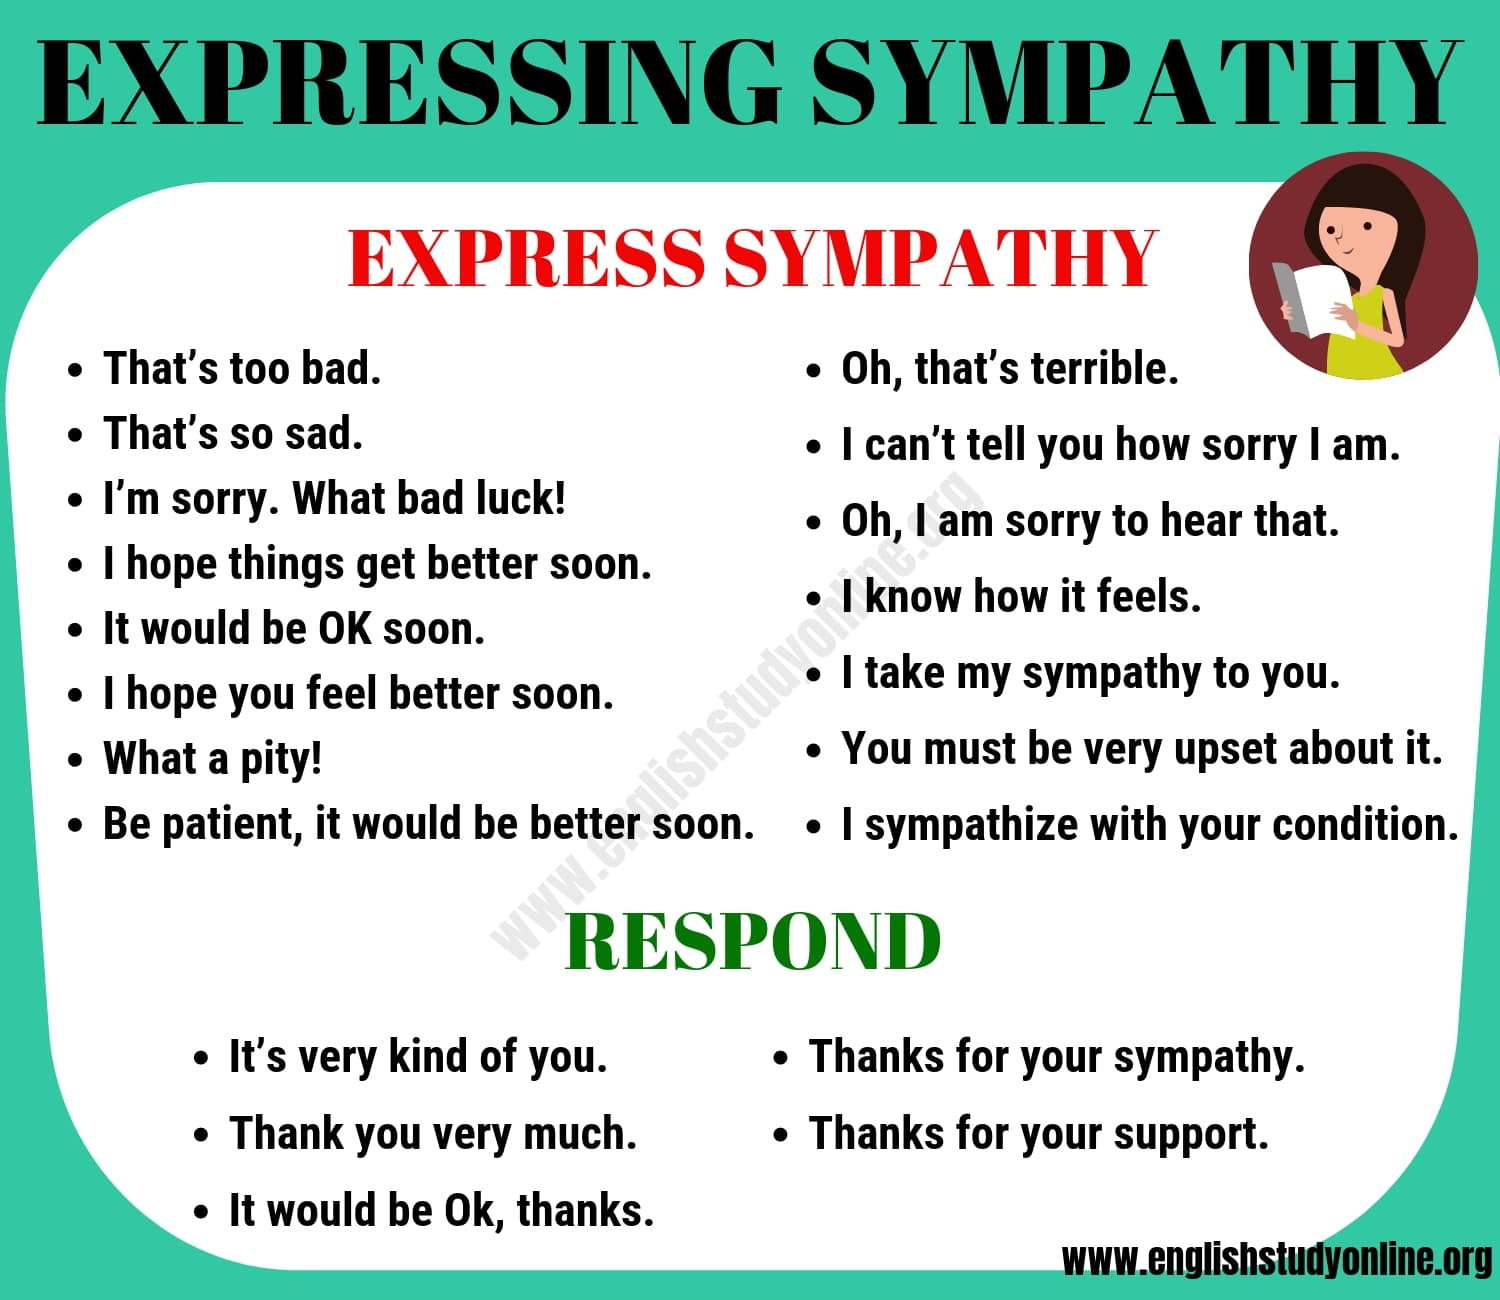 How to Express Sympathy